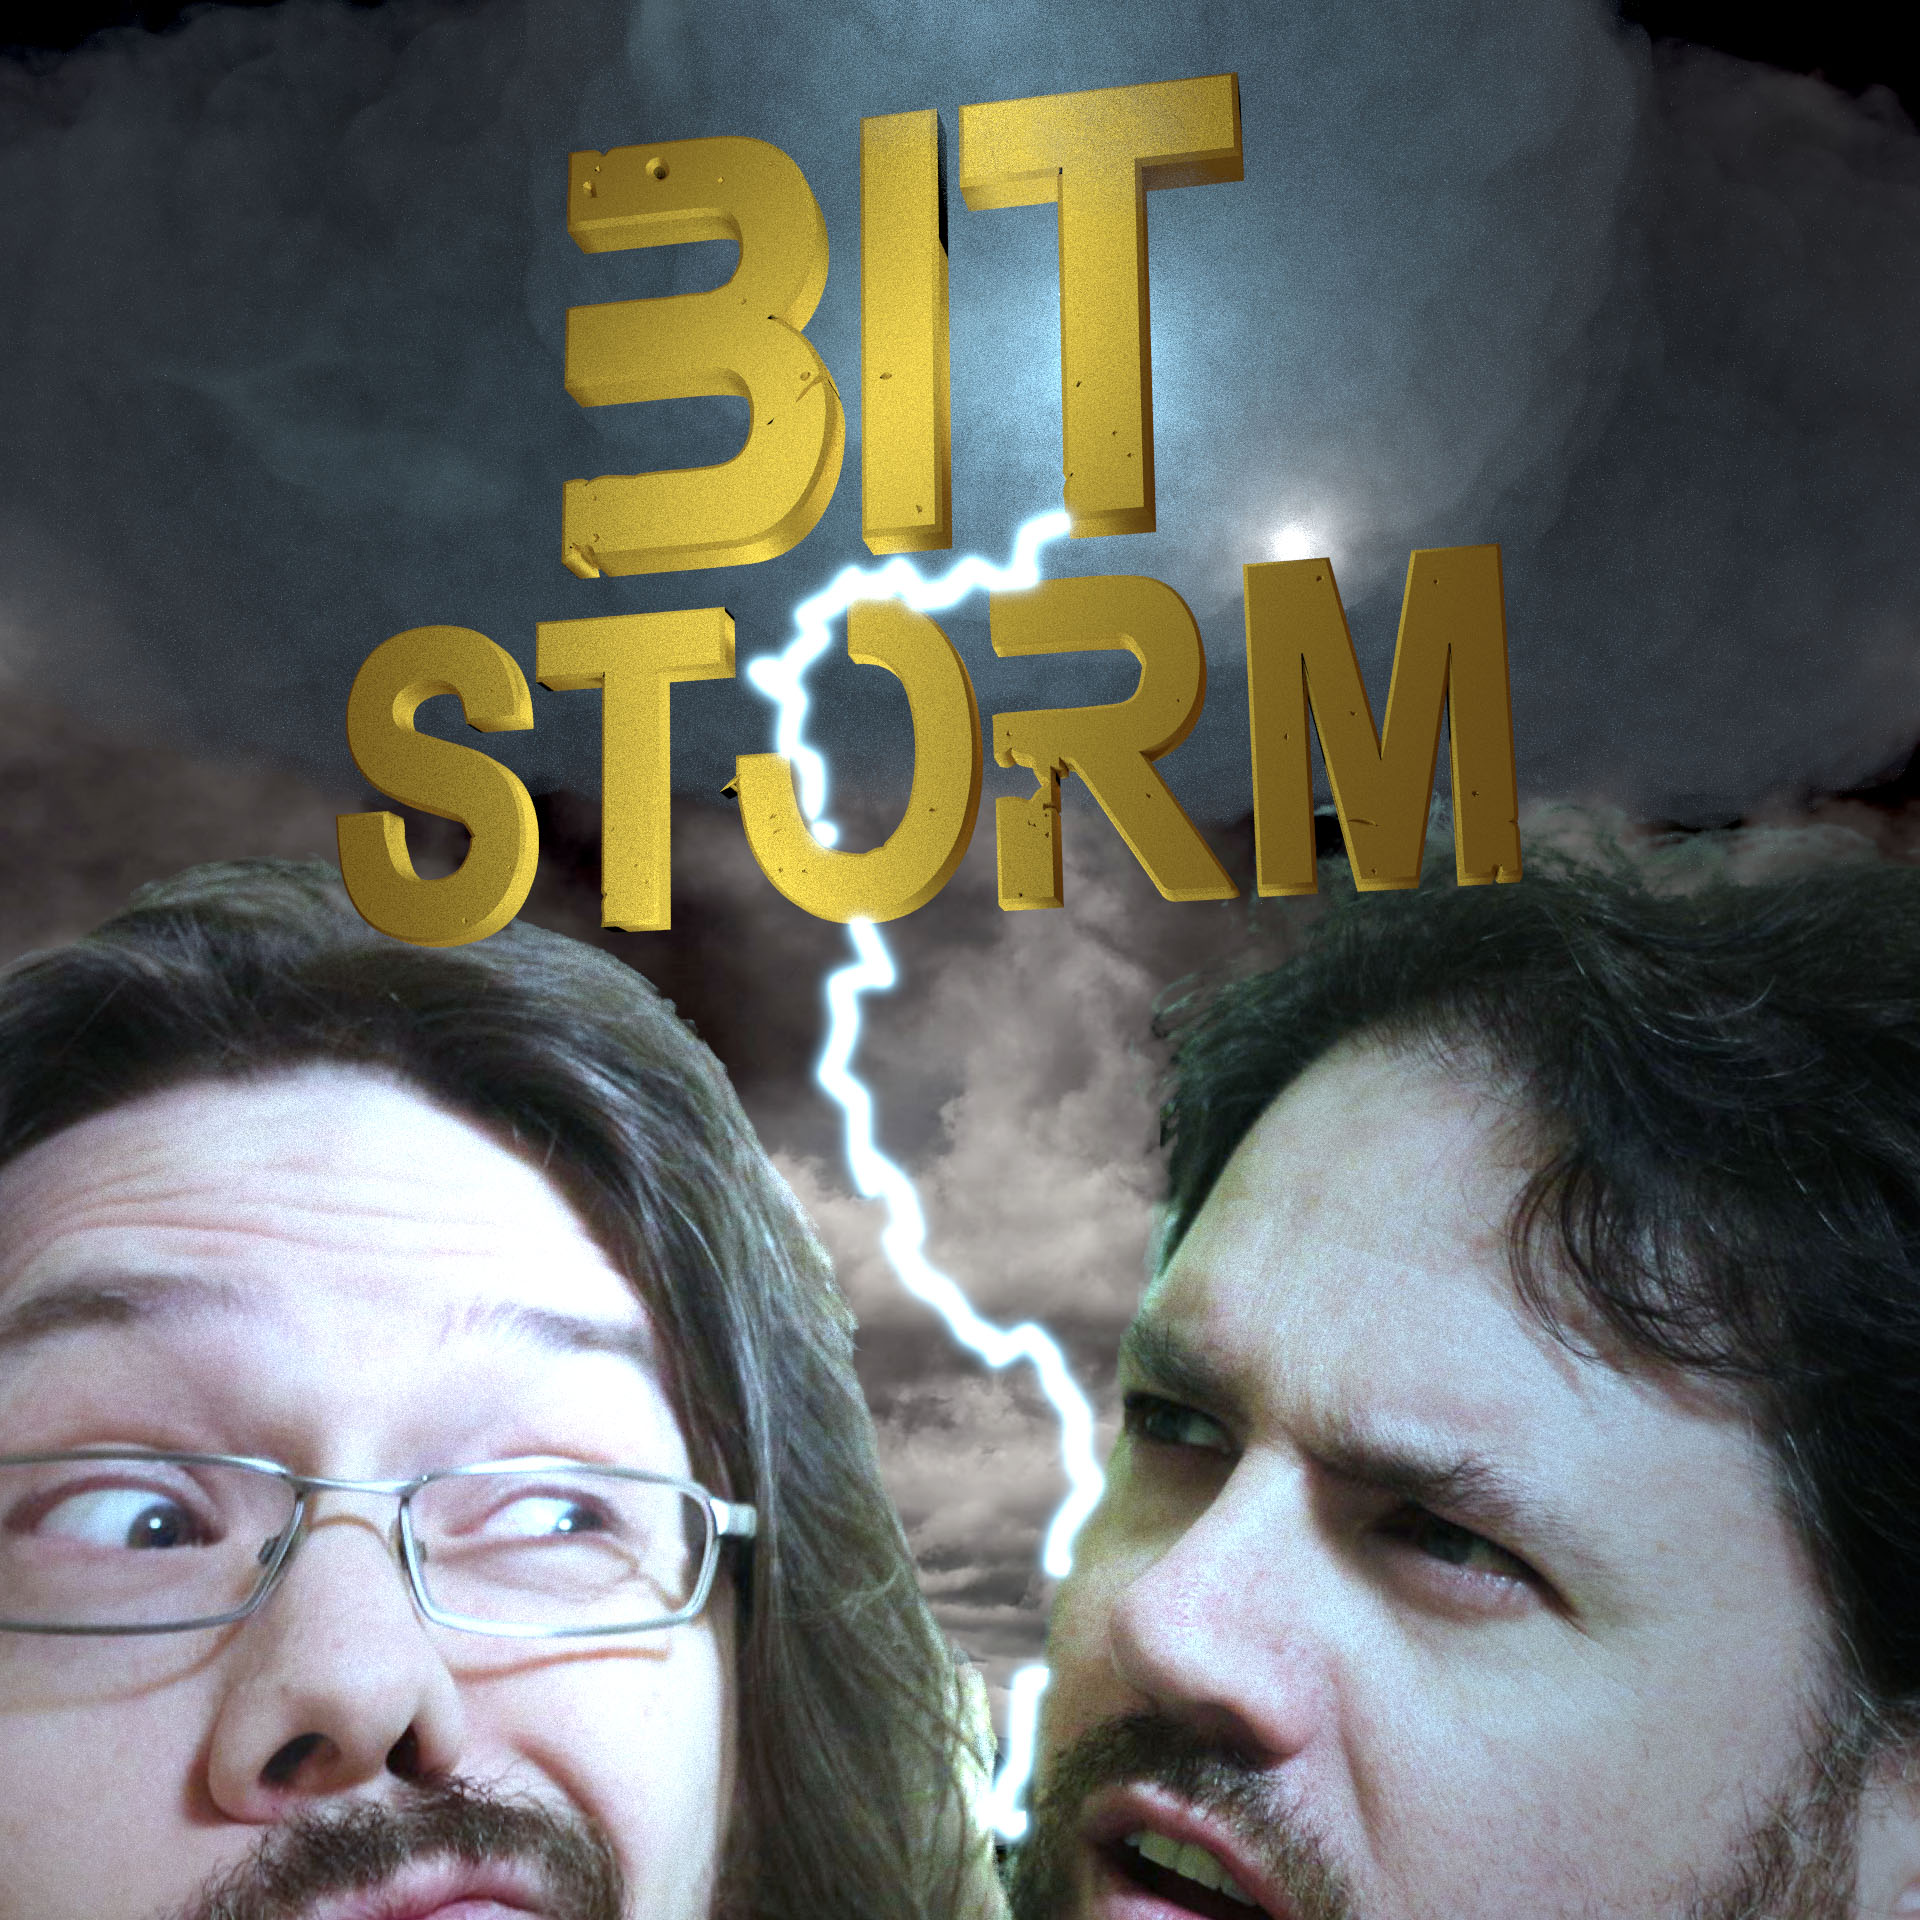 Show artwork for Bit Storm